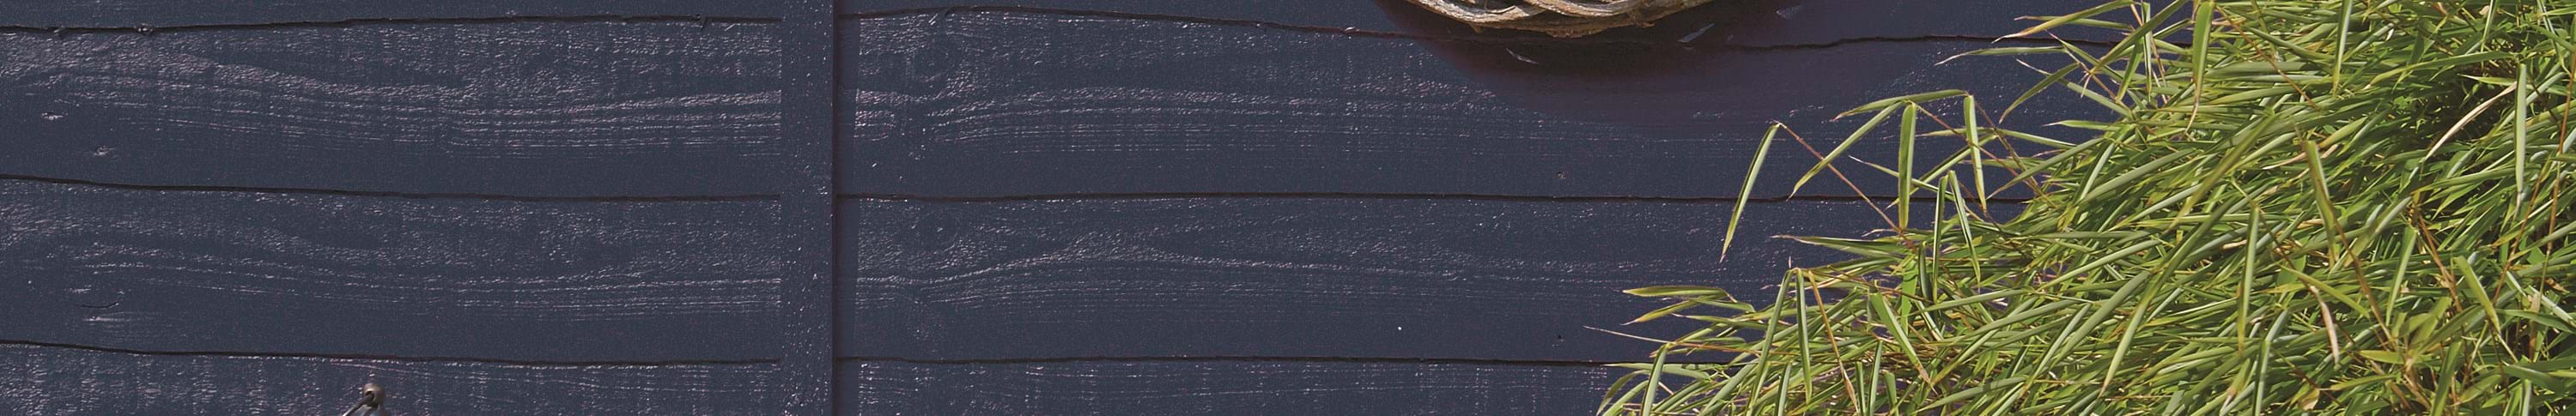 Ronseal_Garden_Paint_Midnight_blue_fence.jpg